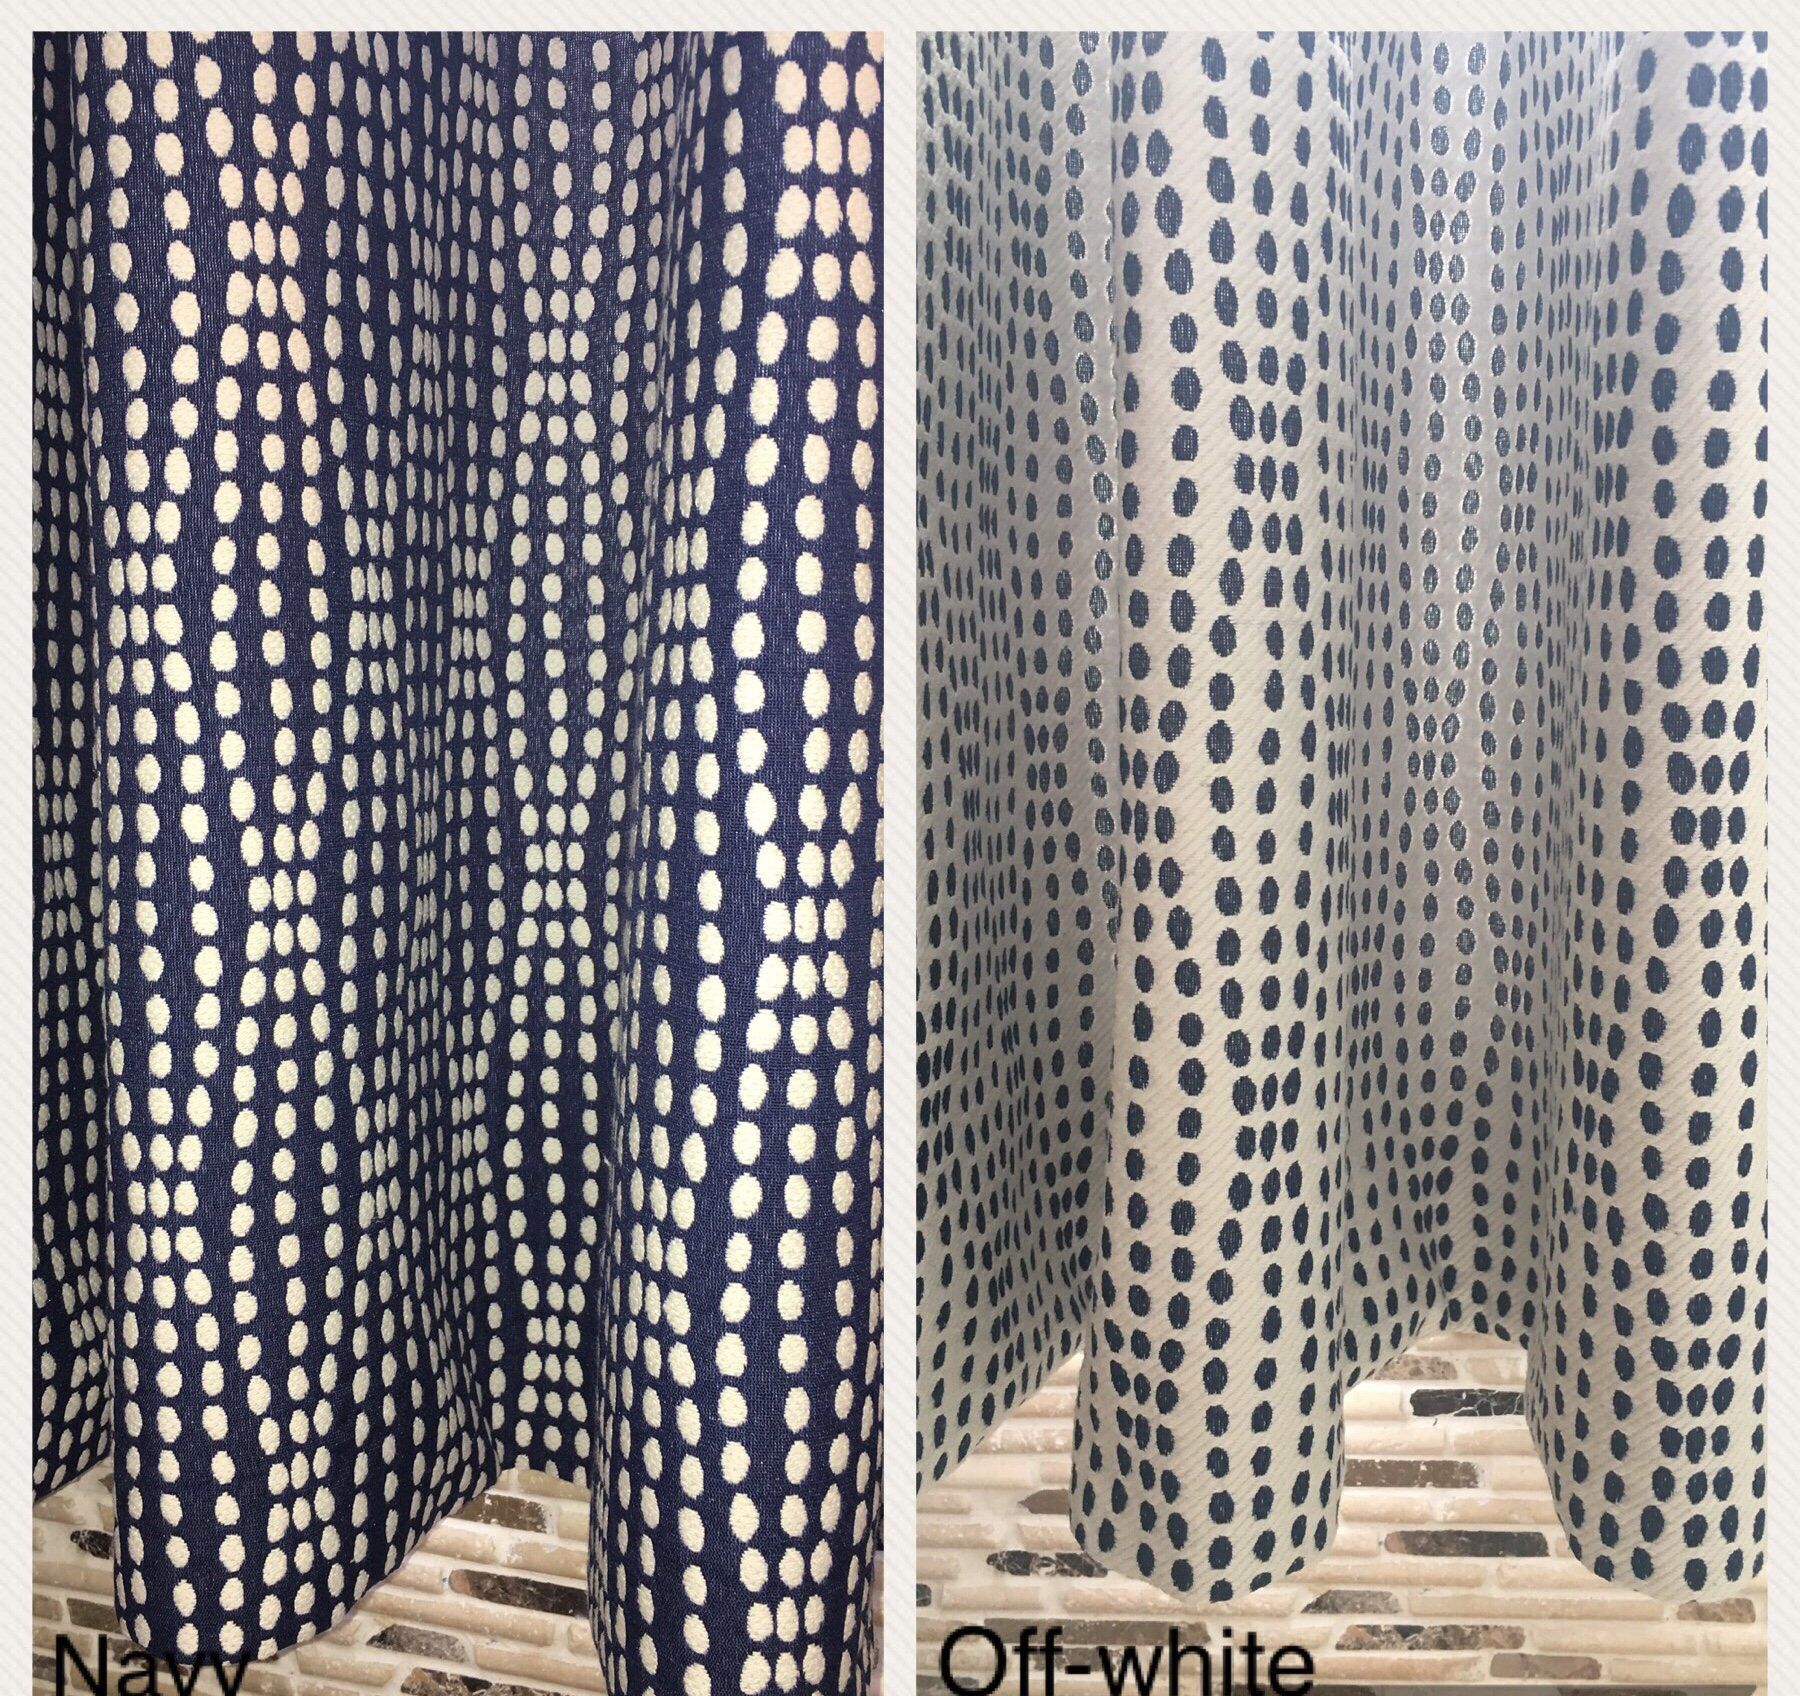 Wavy Dots Curtain Panel, Cafe Curtain Panel Or Curtain